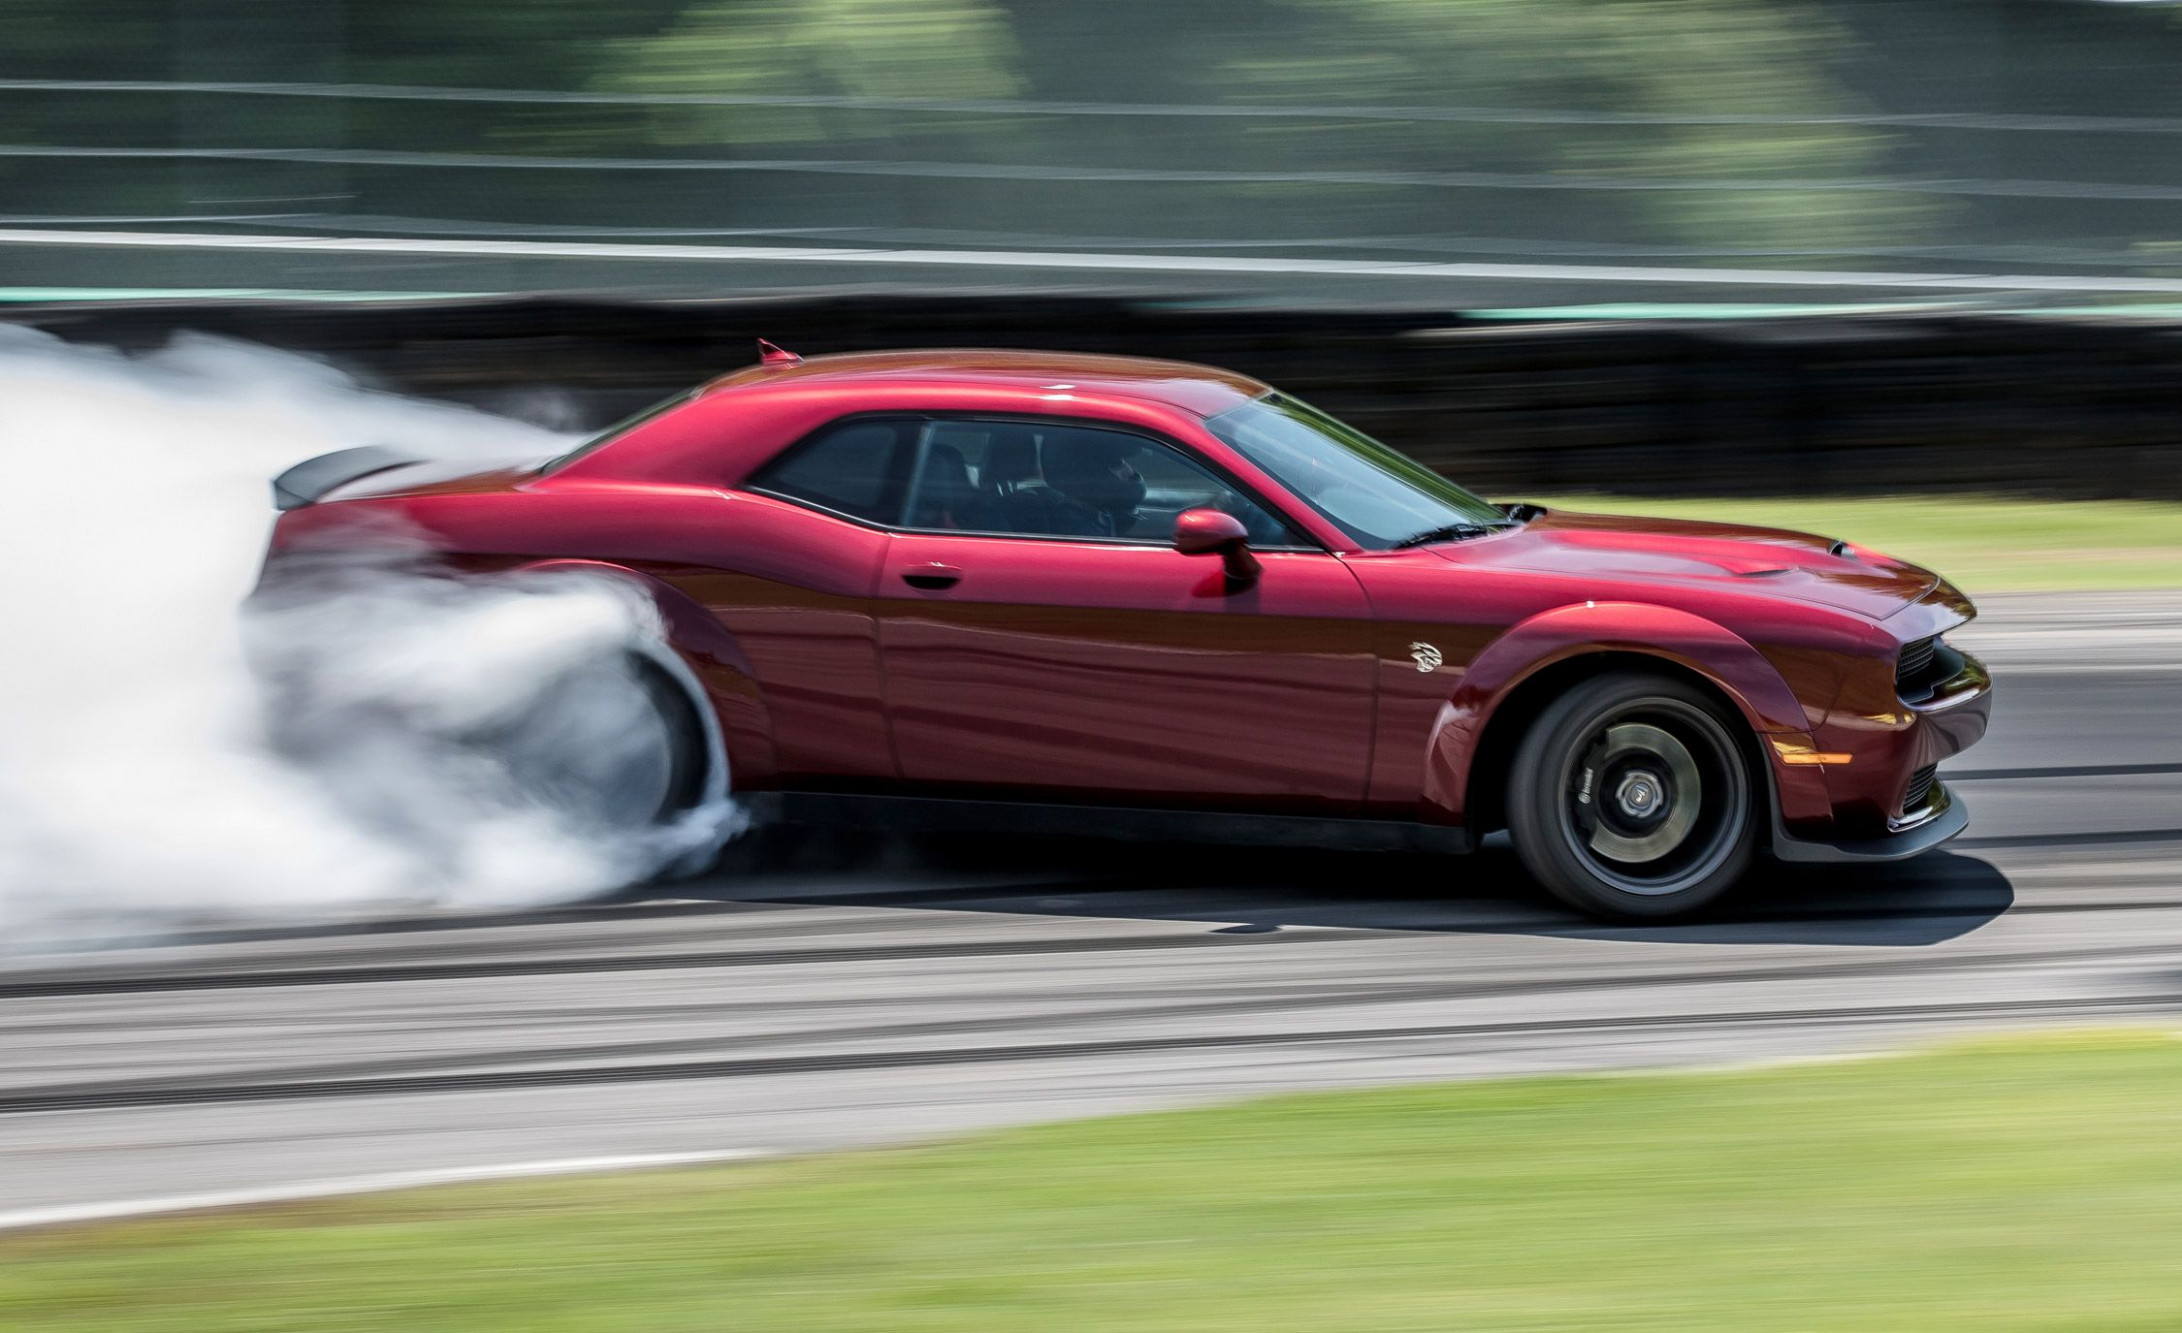 8 Dodge Challenger SRT Hellcat Widebody: Lightning Lap 8 - dodge for josh 2020